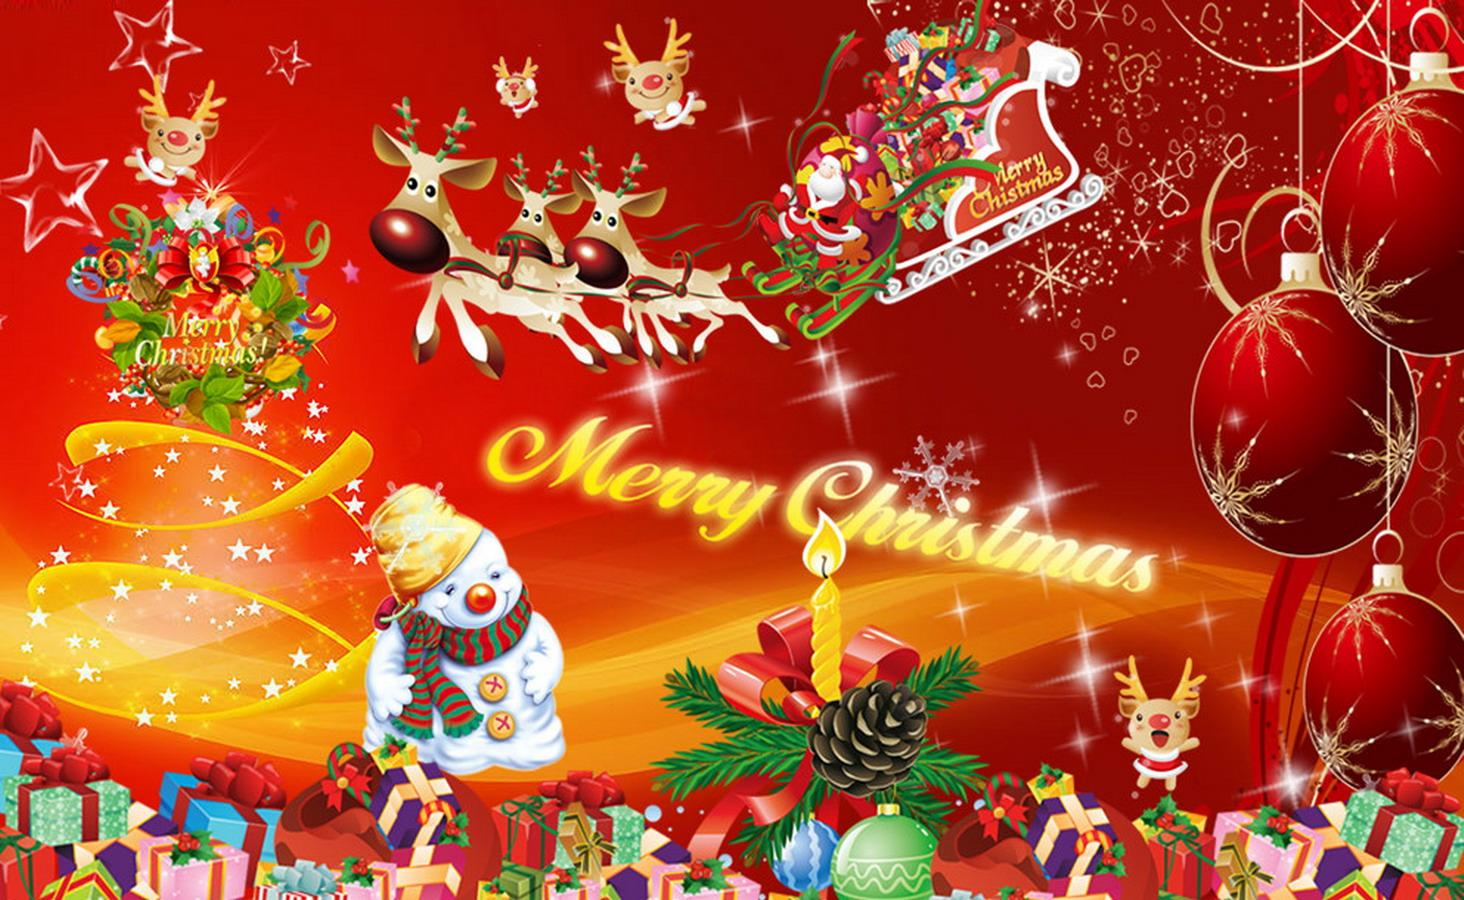 merry christmas tree lights snow man santa animated hd wallpaper